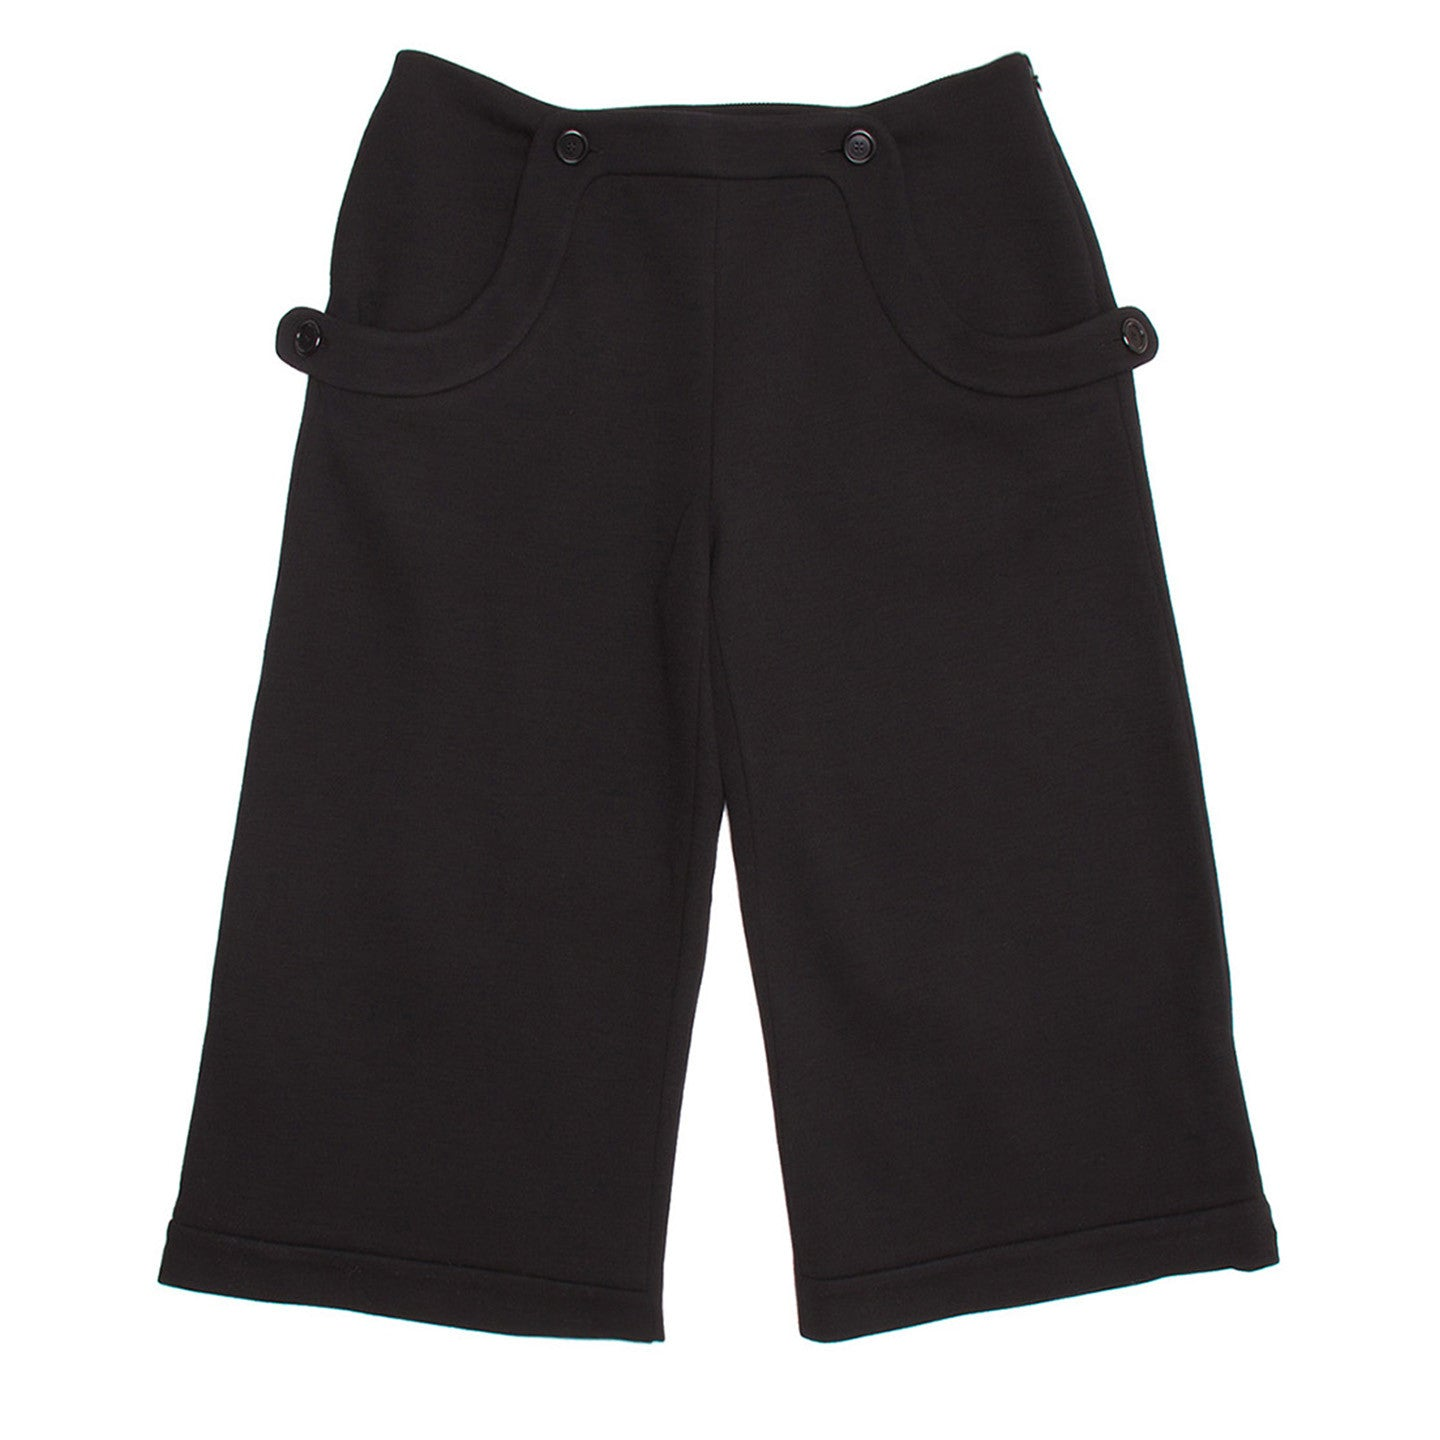 Marni Black Wool Sailor Culottes, Size 44 (Italian)